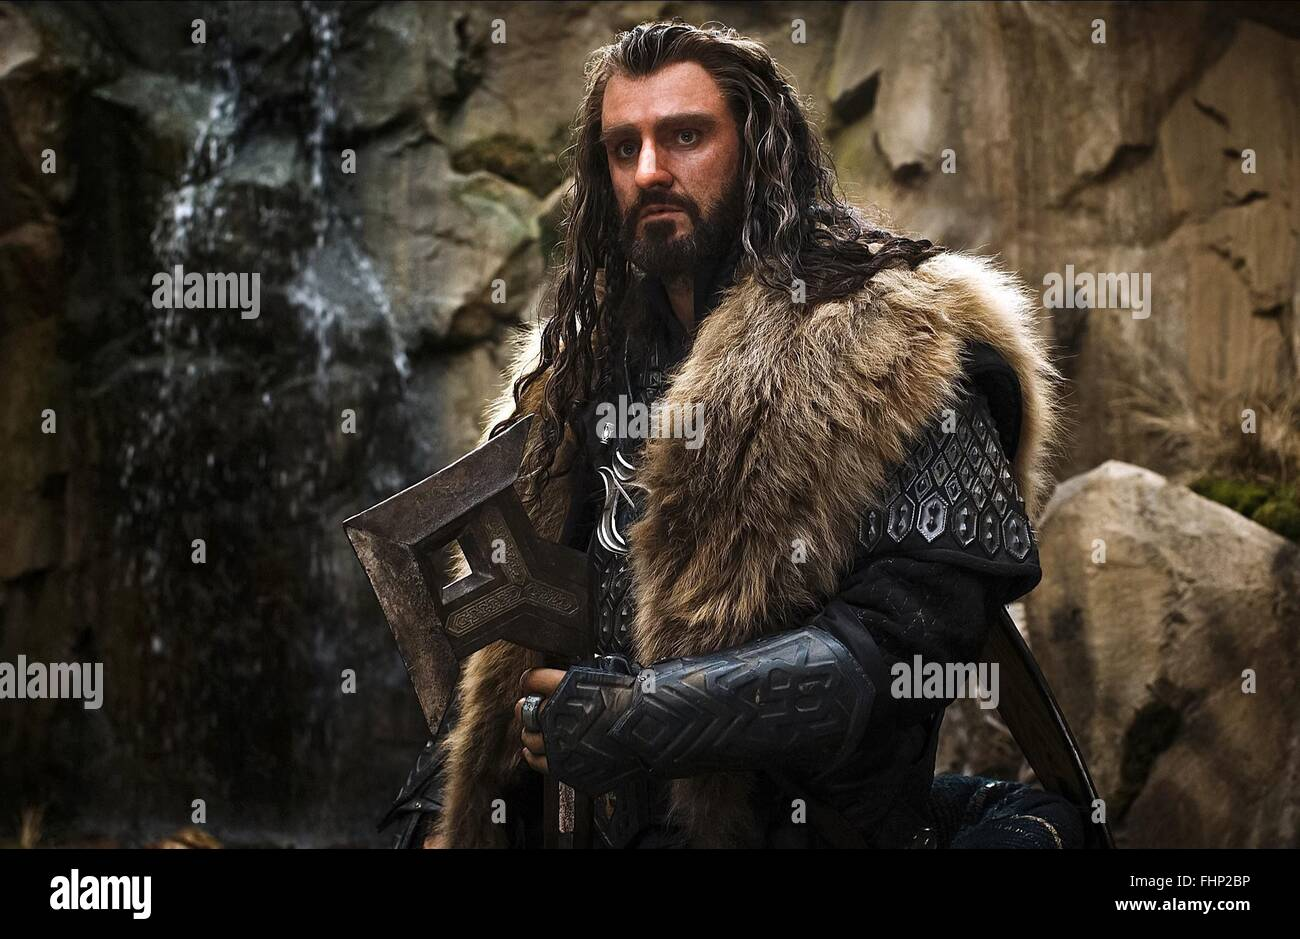 Richard Armitage The Hobbit The Desolation Of Smaug 2013 Stock Photo Alamy